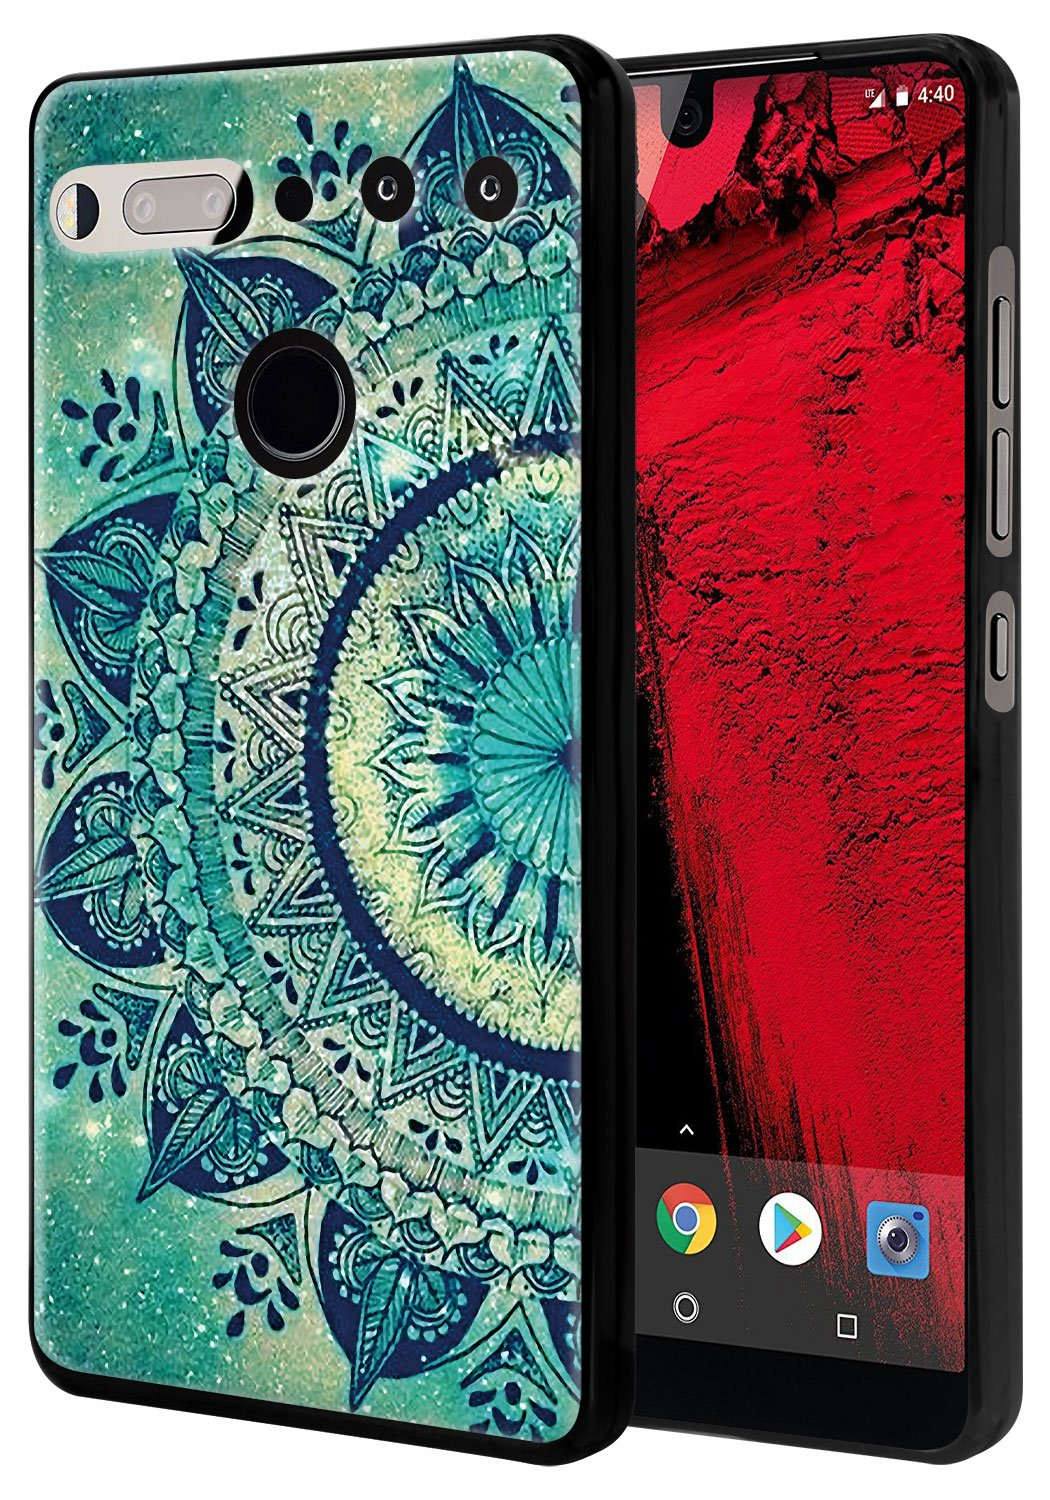 CMID Funda Essential Phone PH-1, Slim Gel TPU Caucho Silicona ...